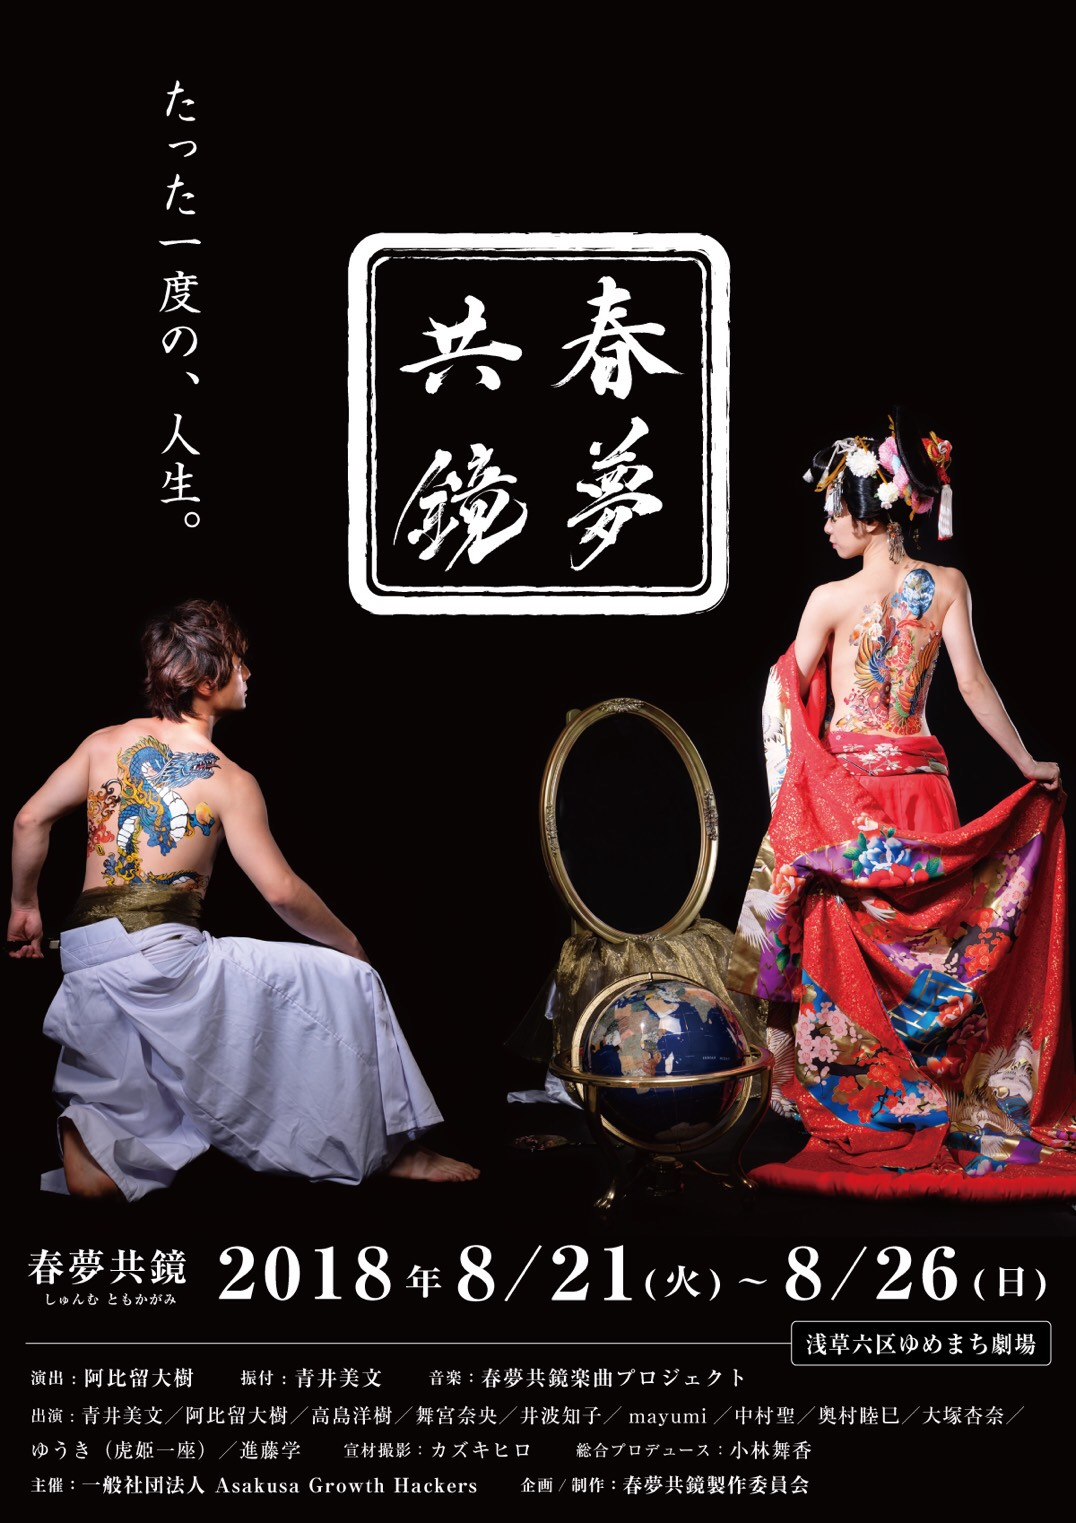 20180804【Press News】舞台『春夢共鏡』花魁と絵画、最新技術で魅せるNon-verbal Performance Show開催!